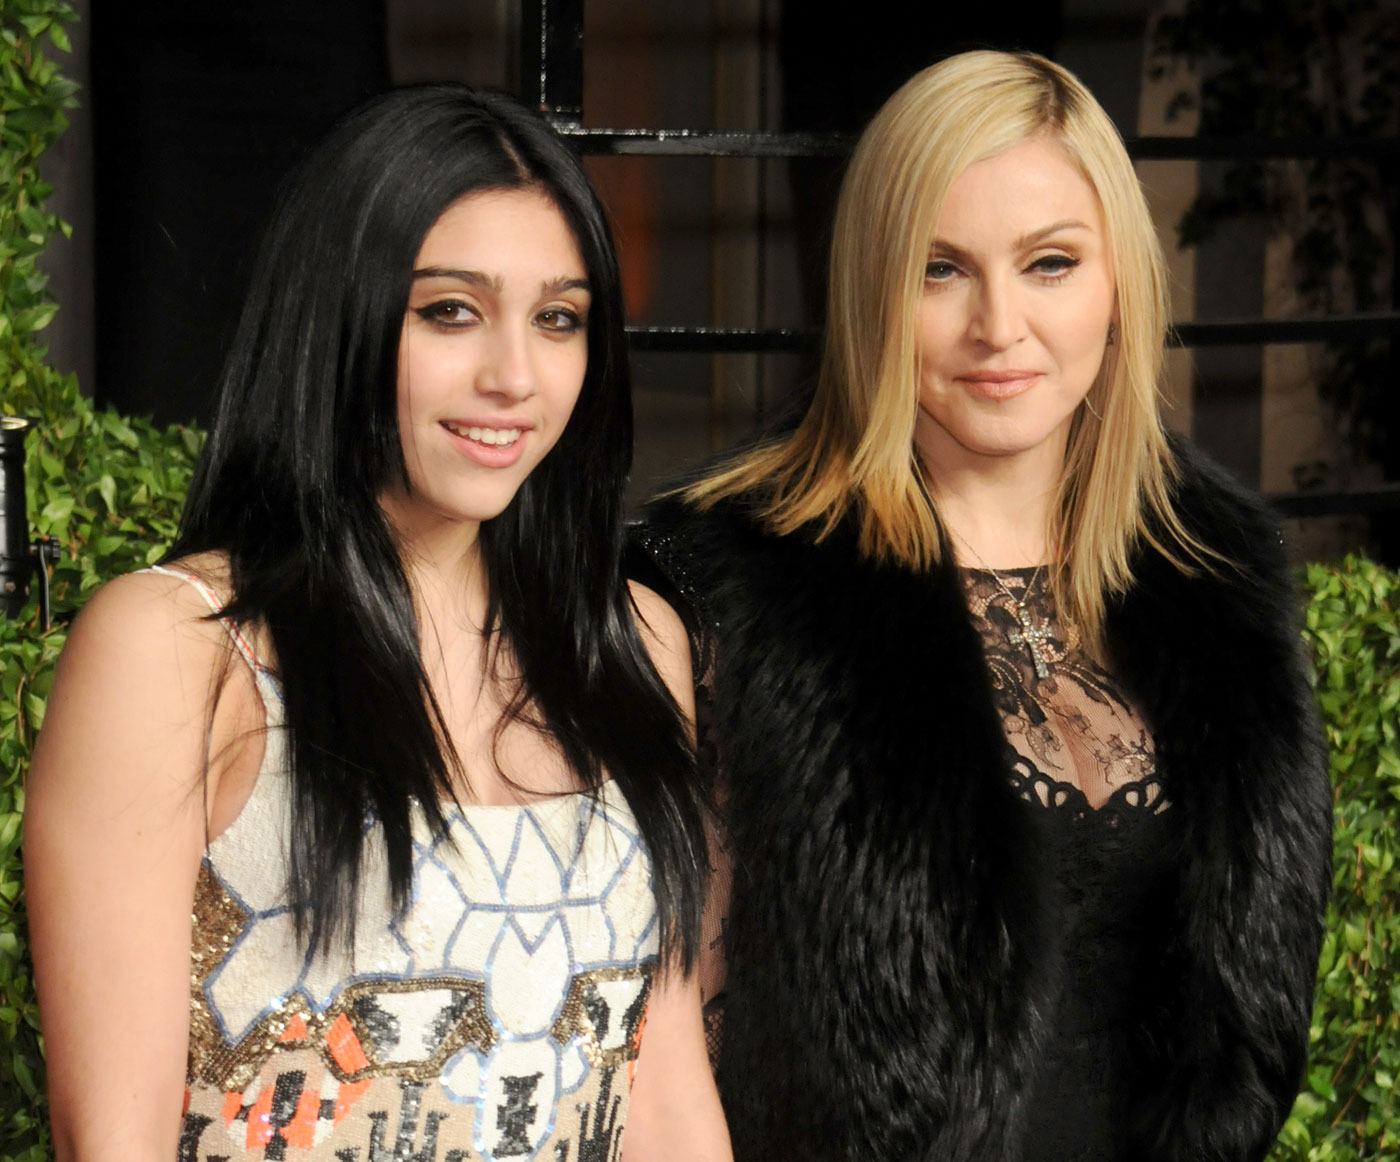 Madonna's daughter Lourdes becomes a model for Stella McCartney.